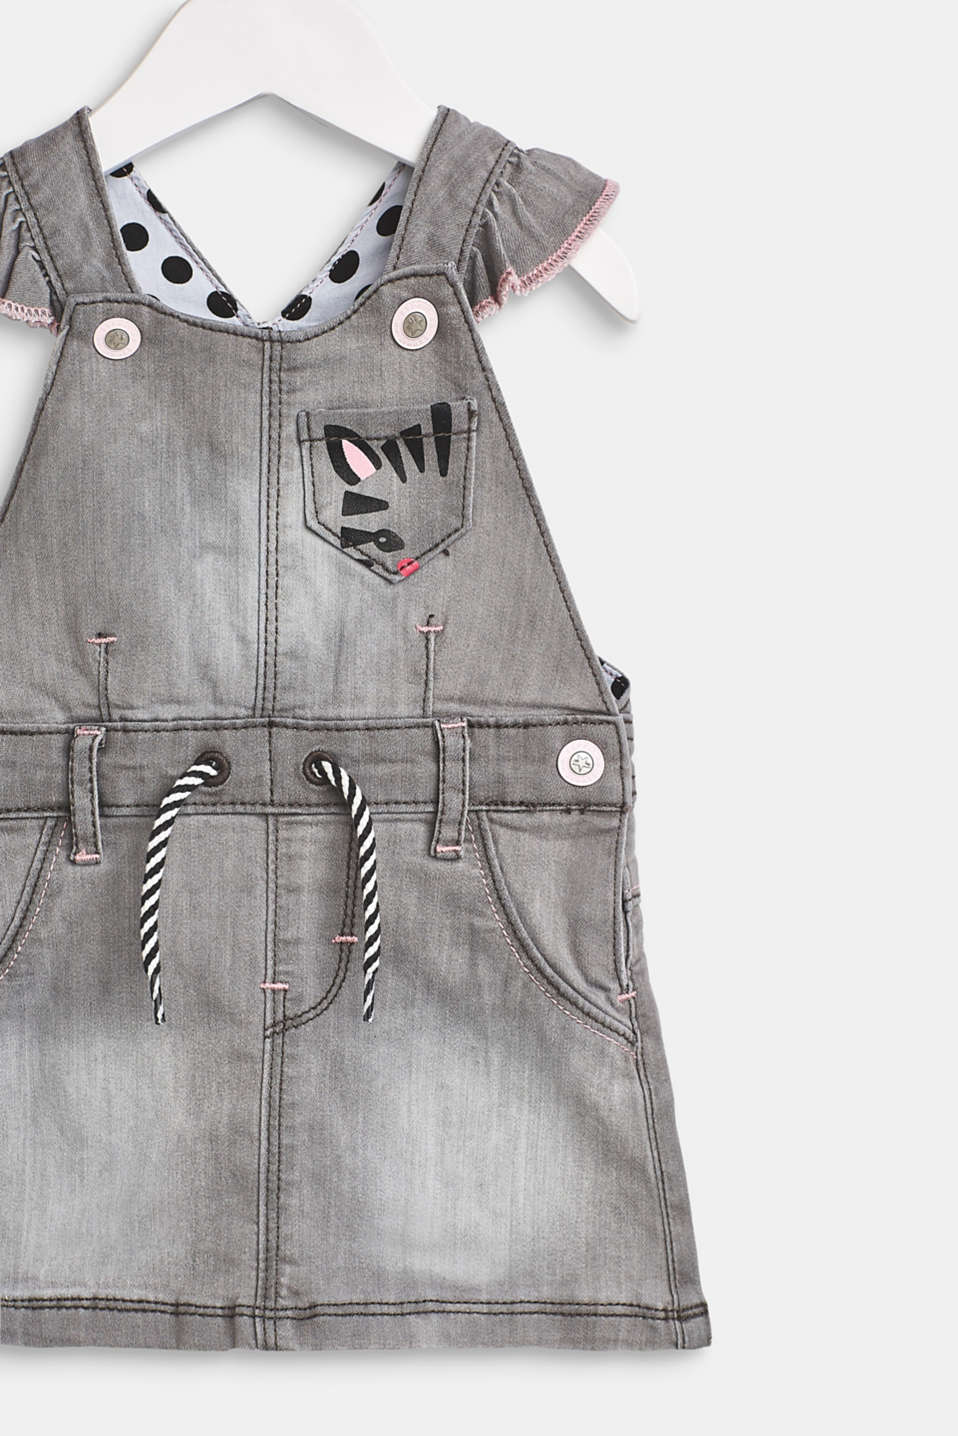 Dungaree dress with decorative elements made of stretch denim, LCLIGHT GREY DEN, detail image number 2